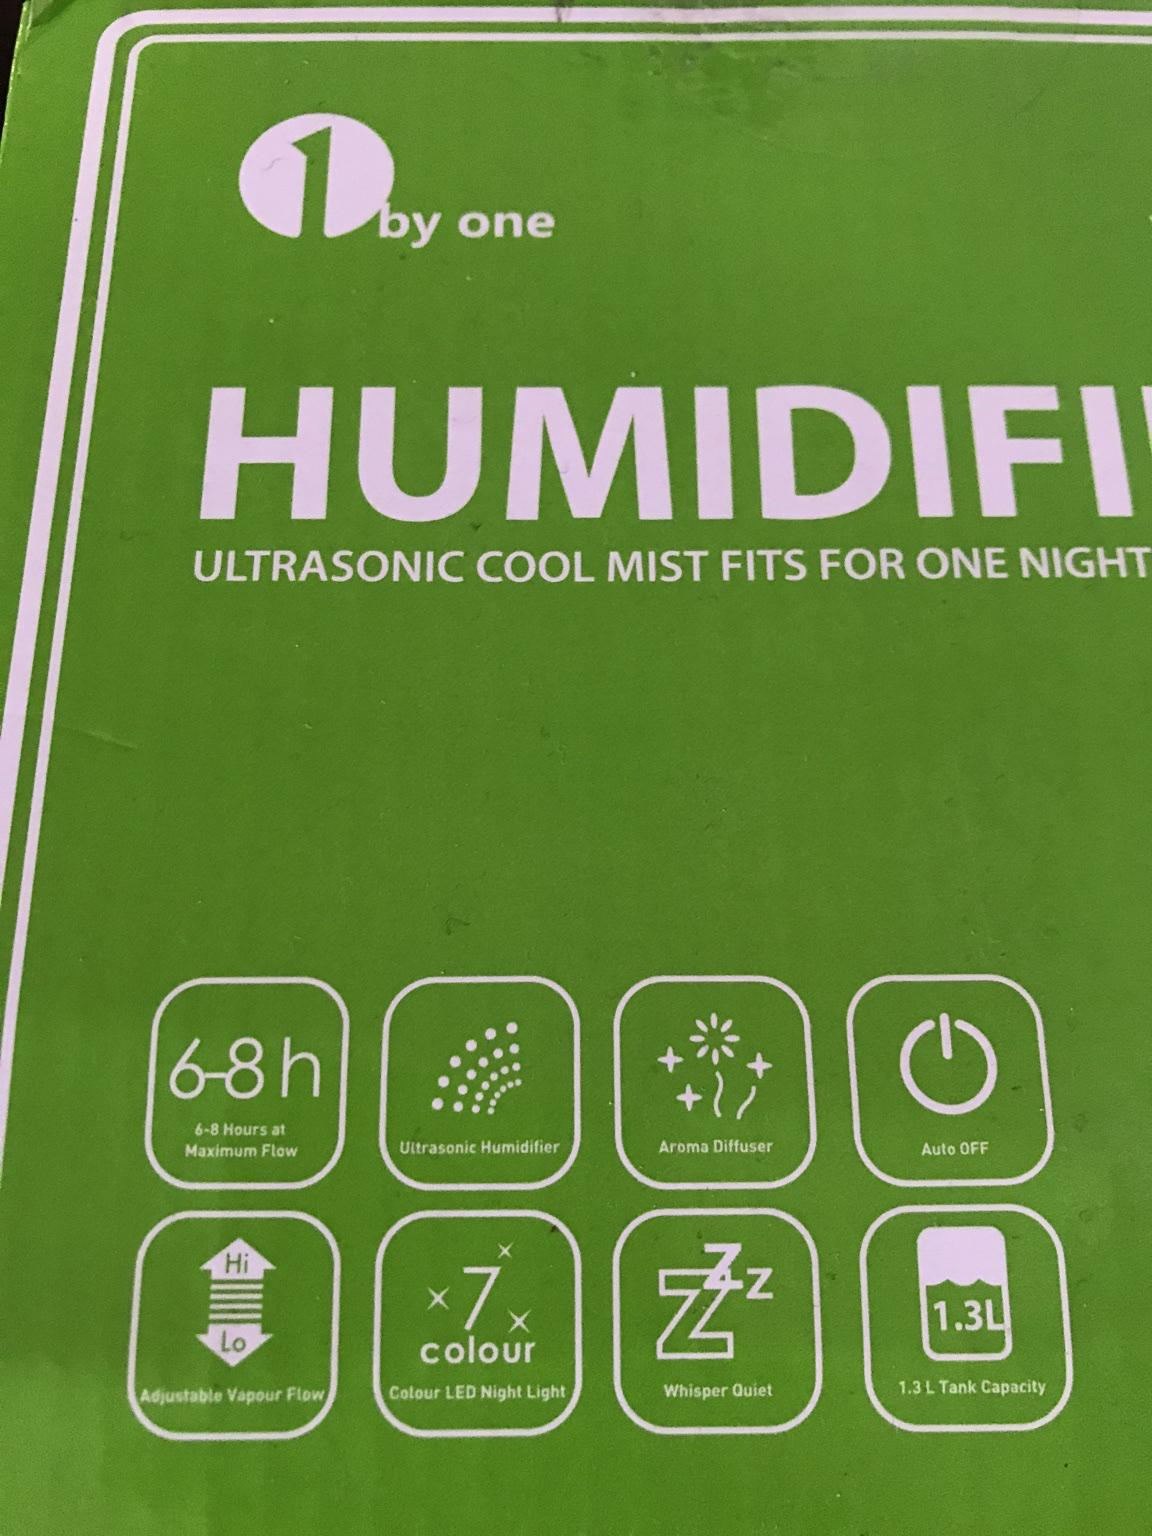 Ultrasonic humidifier 1by one